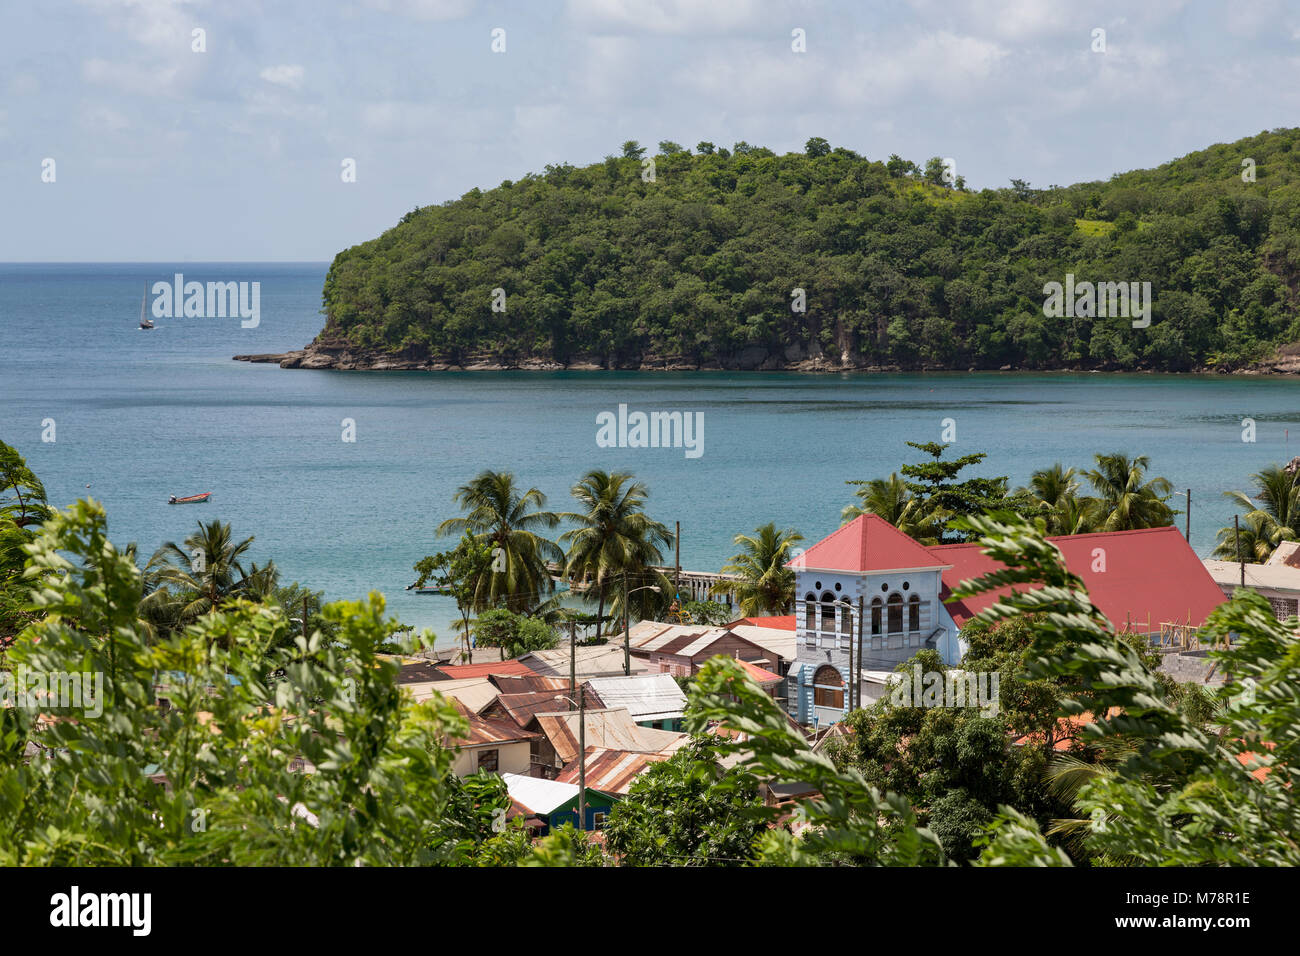 Church in the small town of Canaries, with Canaries Bay beyond, St. Lucia, Windward Islands, West Indies Caribbean, - Stock Image